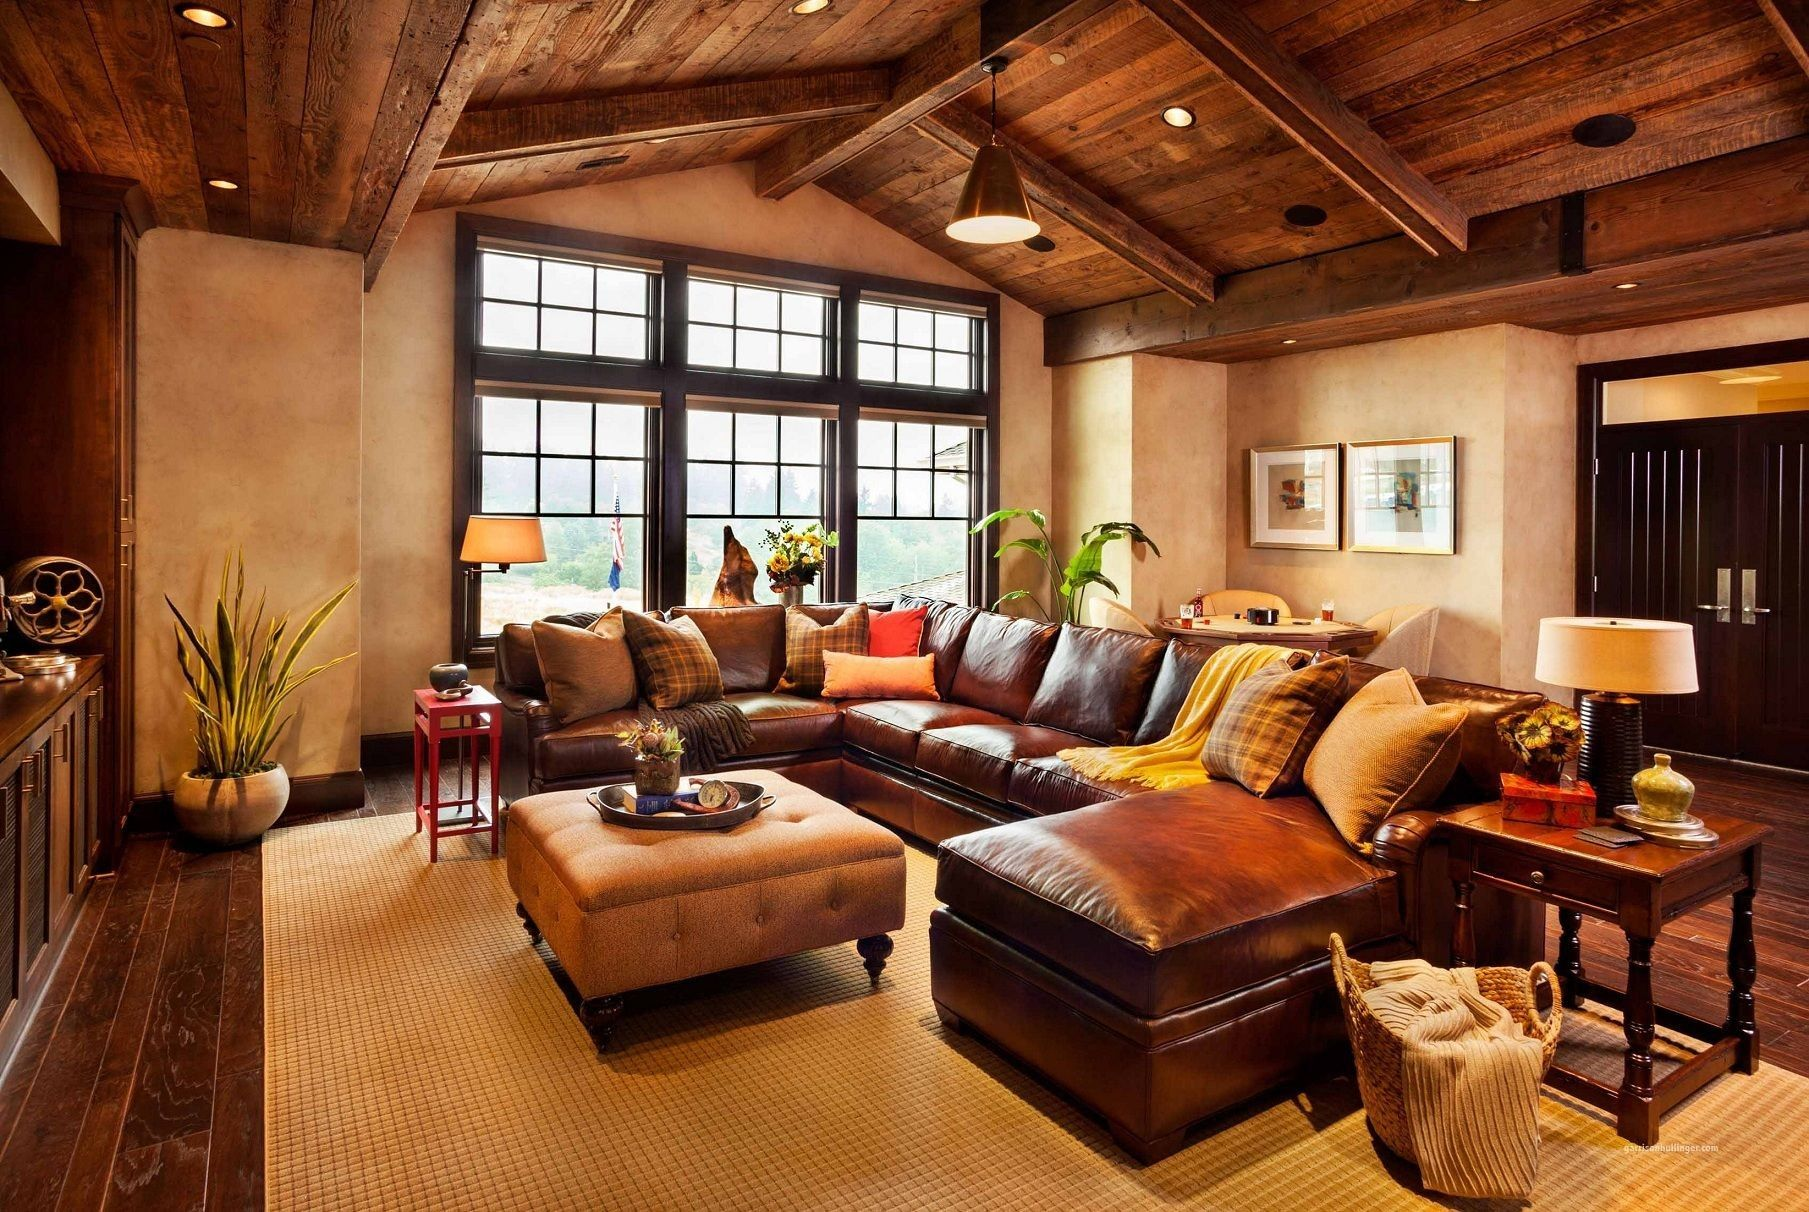 30 Awesome Rustic Italian Living Room Ideas